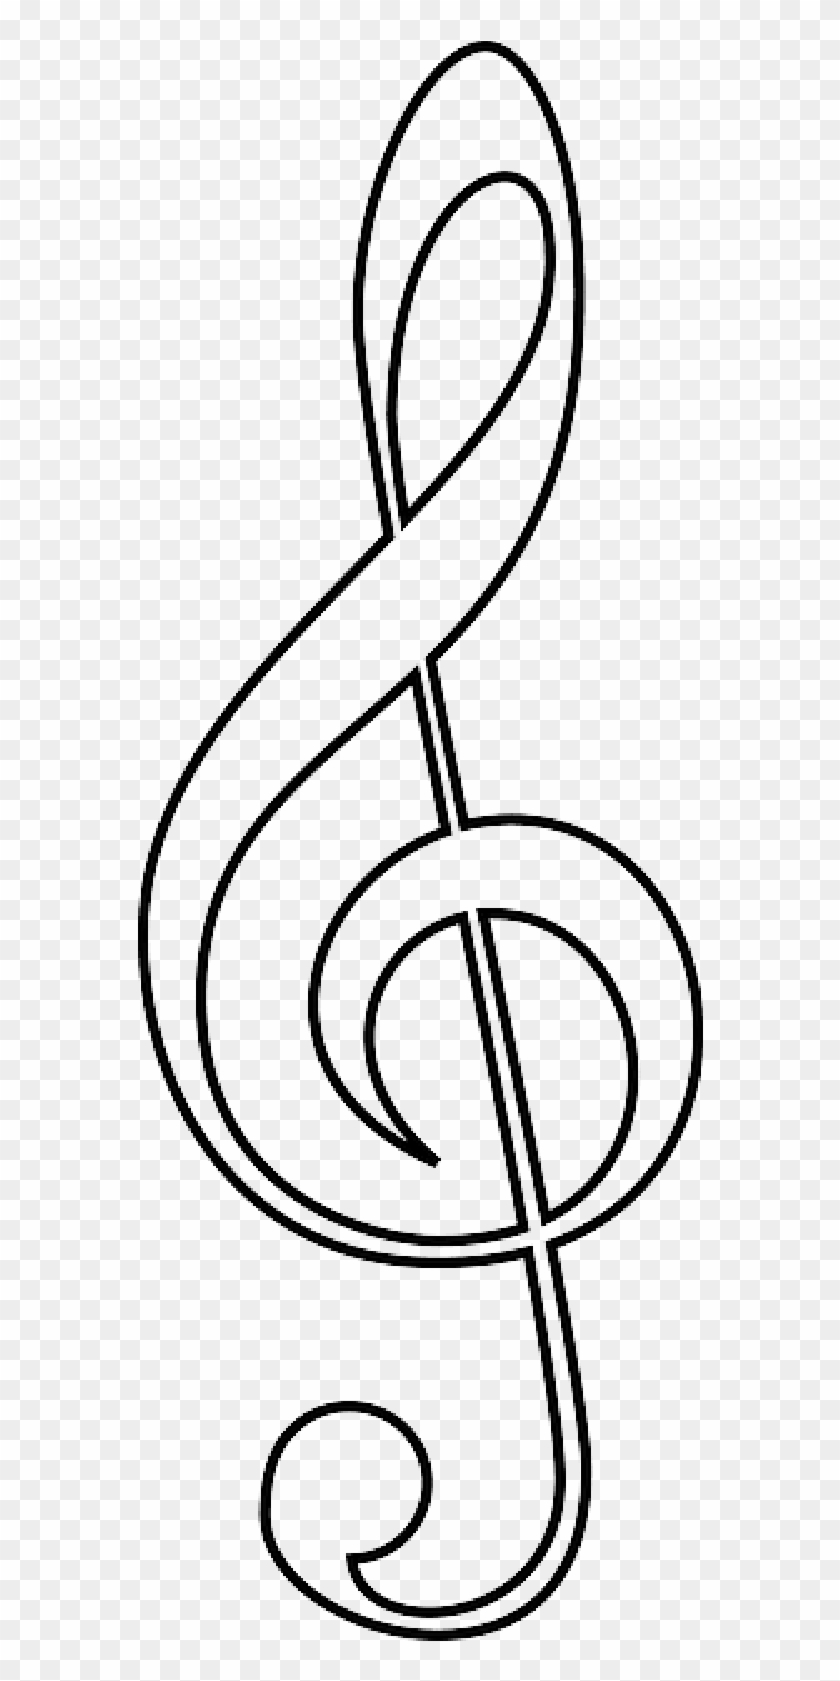 Person Outline Coloring Page Drawing Of A Music Note Free